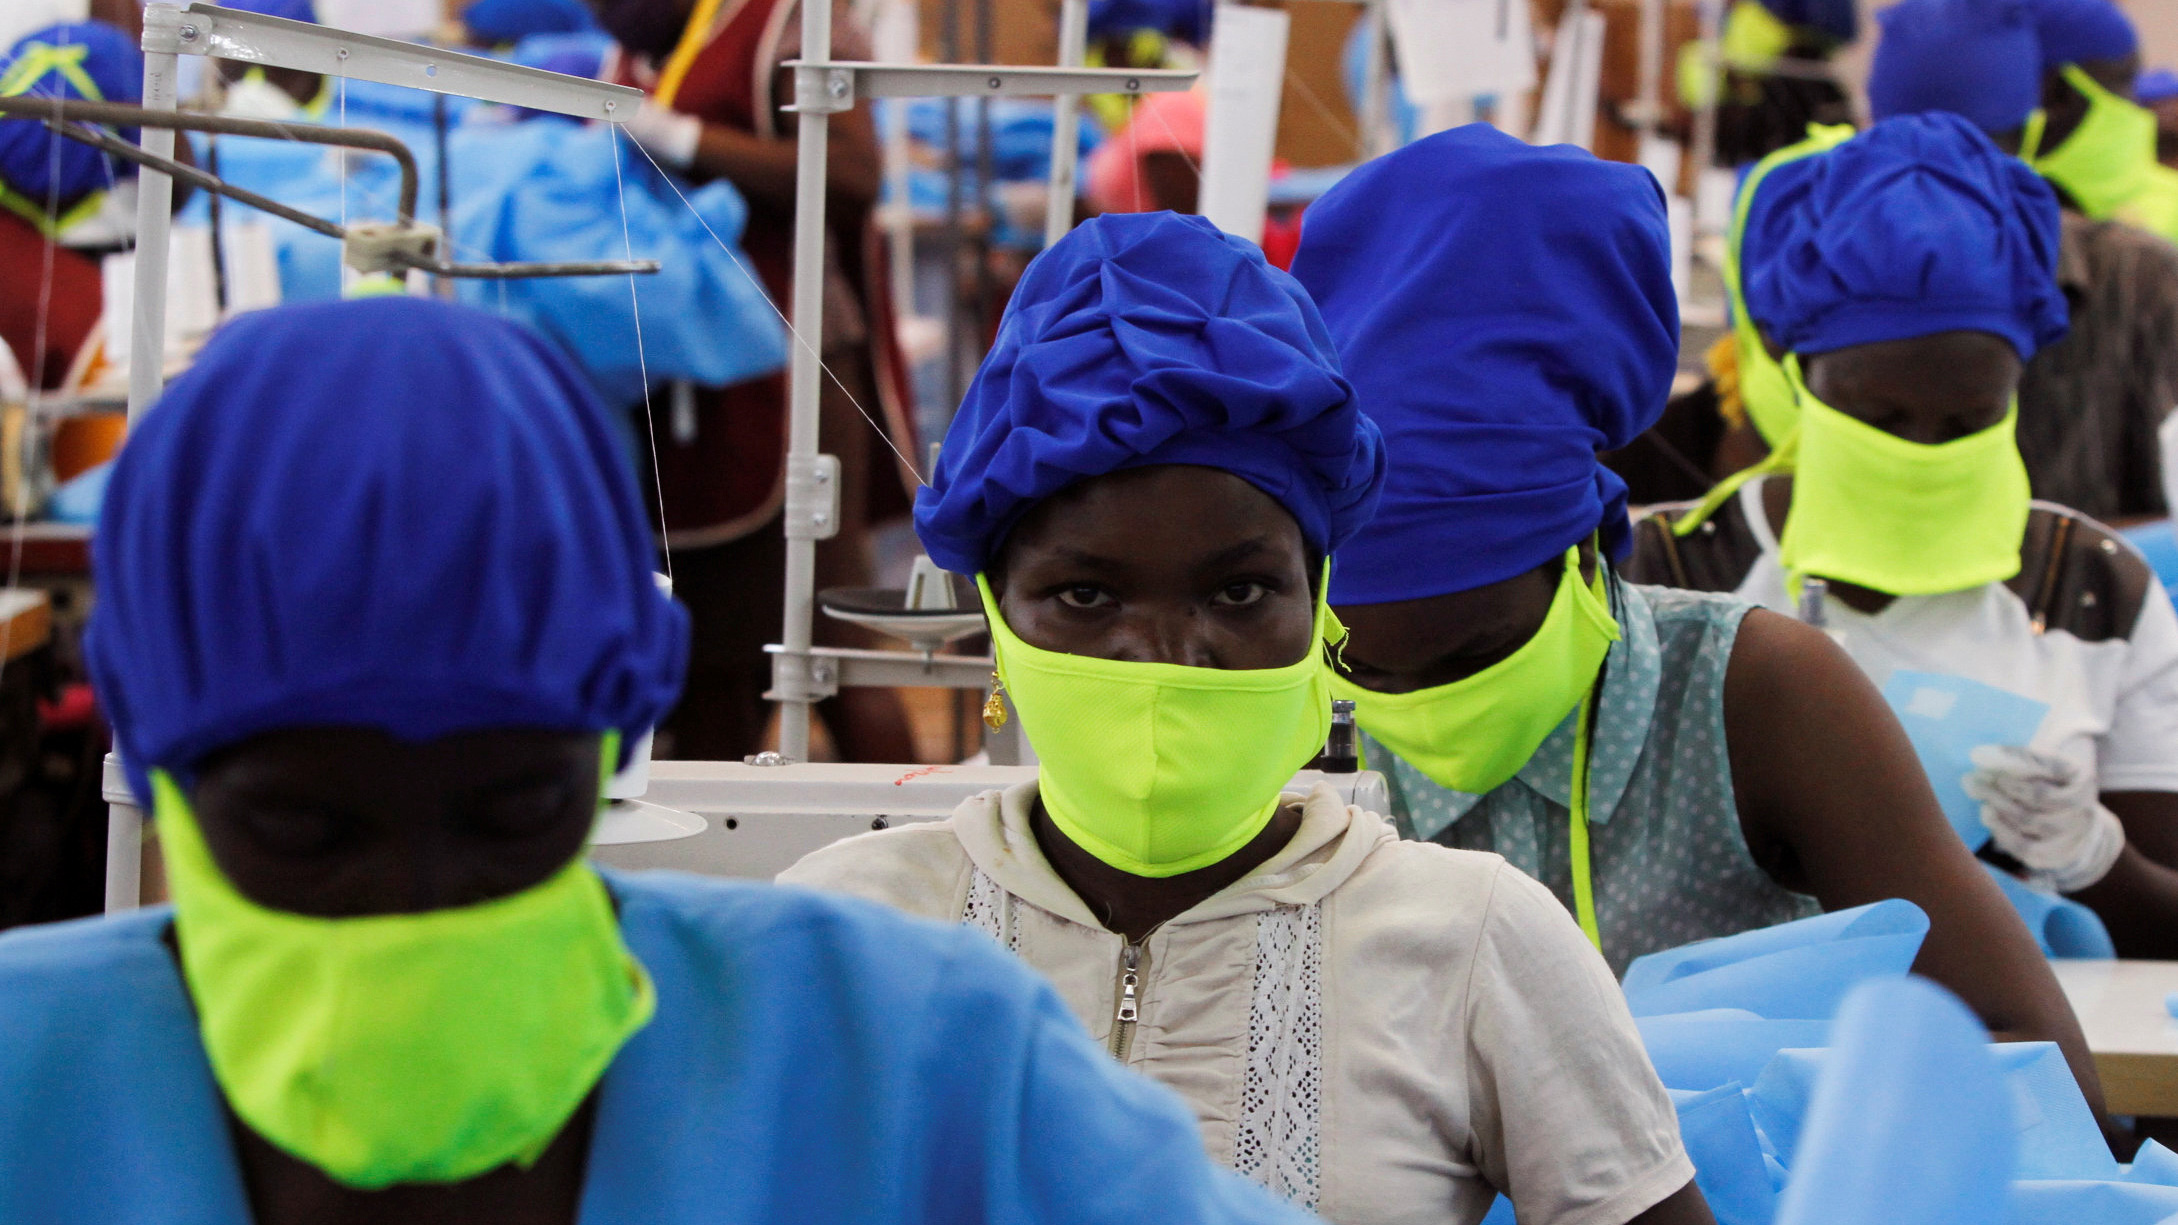 The photo shows a row of workers wearing protective blue suits and bright green facemasks working in a factory.